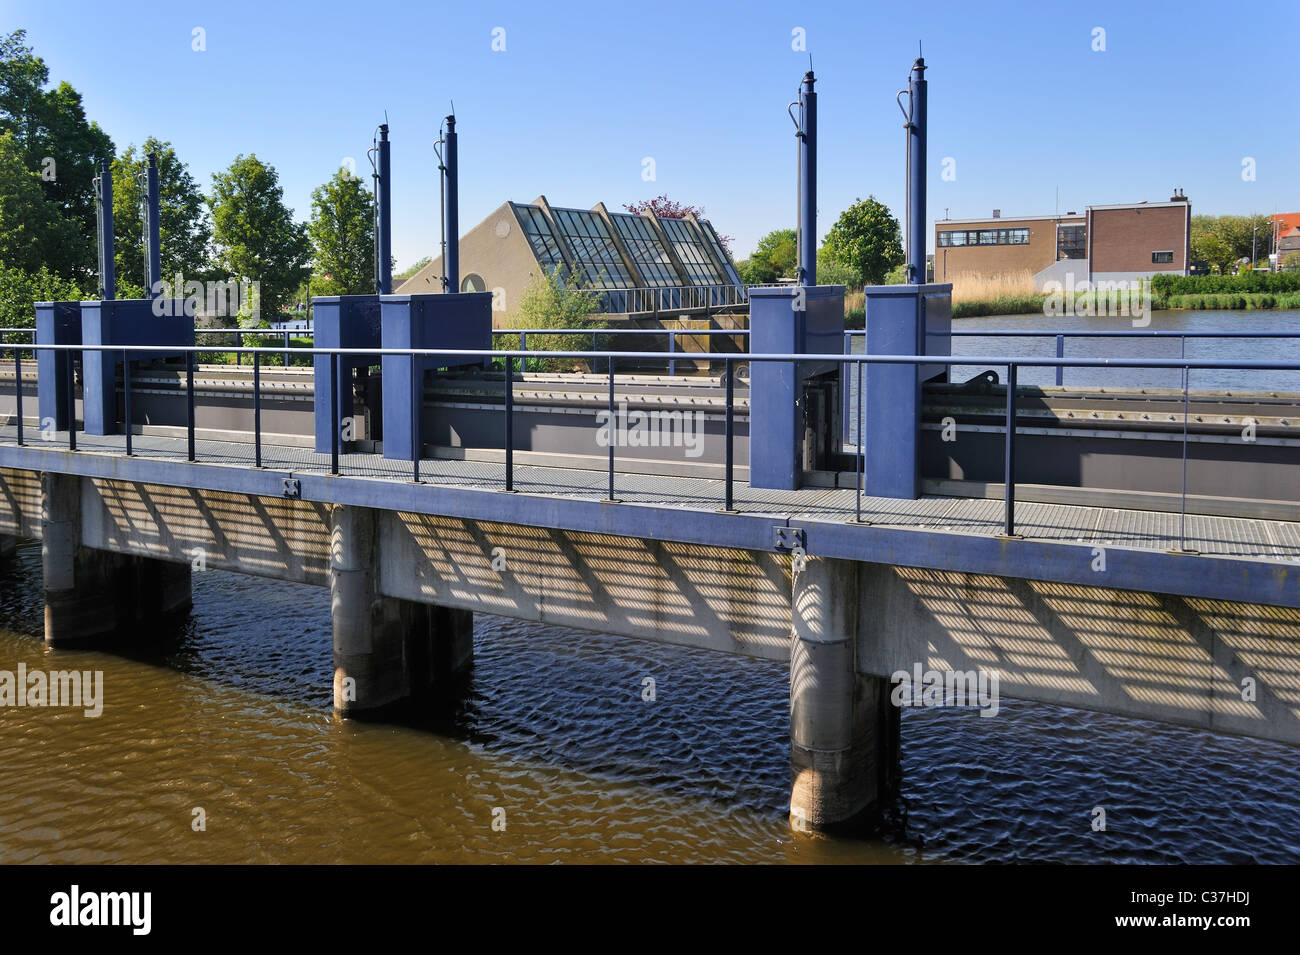 Sluice gates near Archimedean pumping station driven by diesel engines used to drain the polders at Kinderdijk in - Stock Image